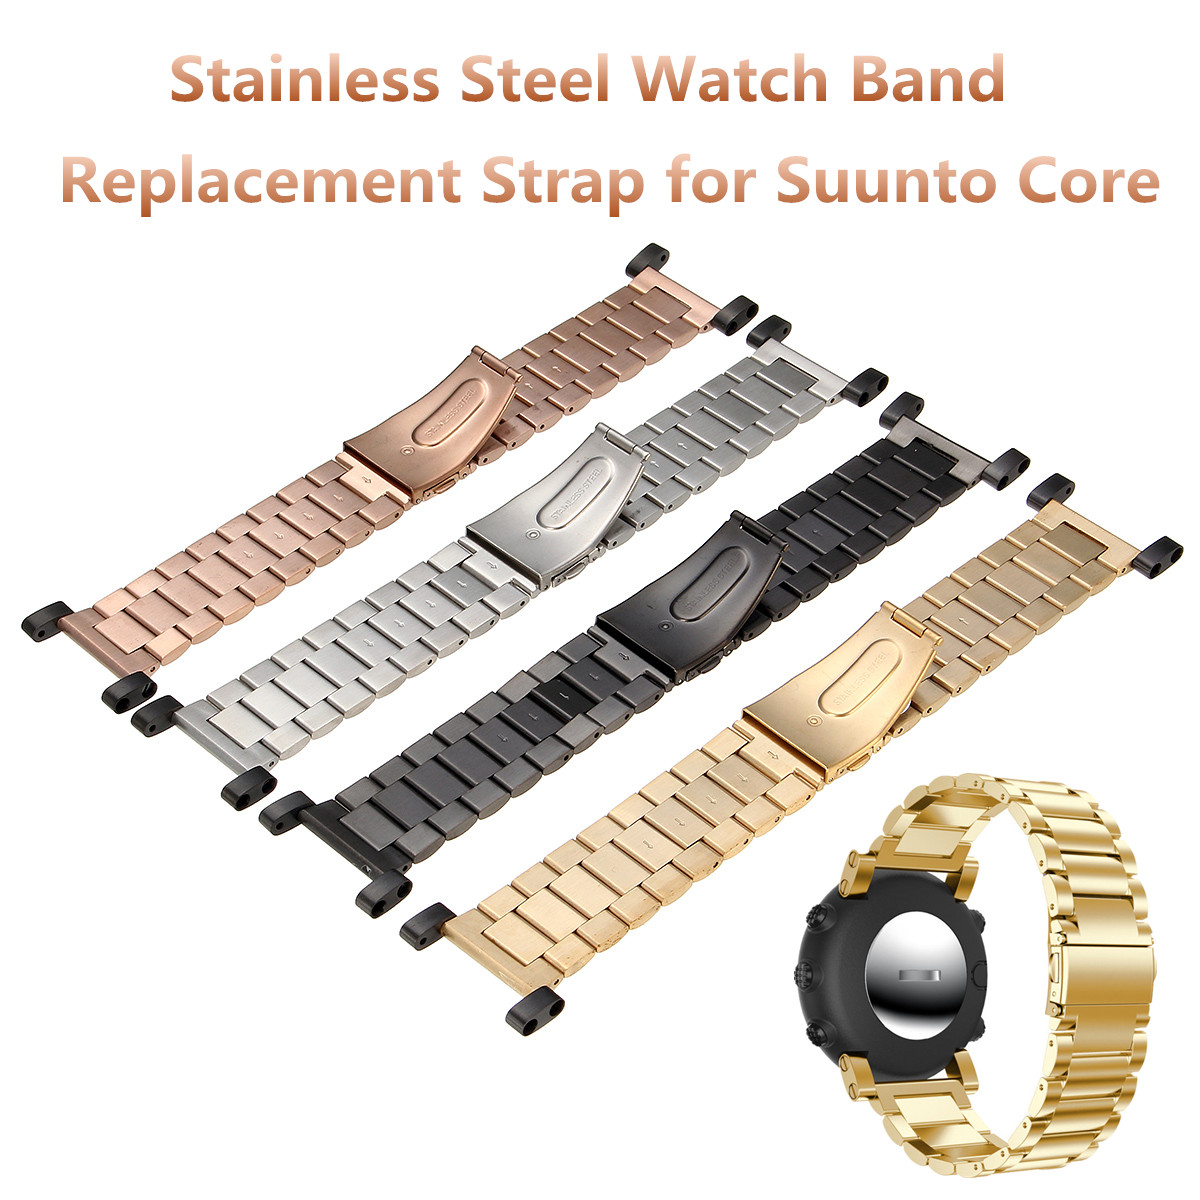 Replacement Stainless Steel Wristband Band Strap Bracelet For Suunto Core Series